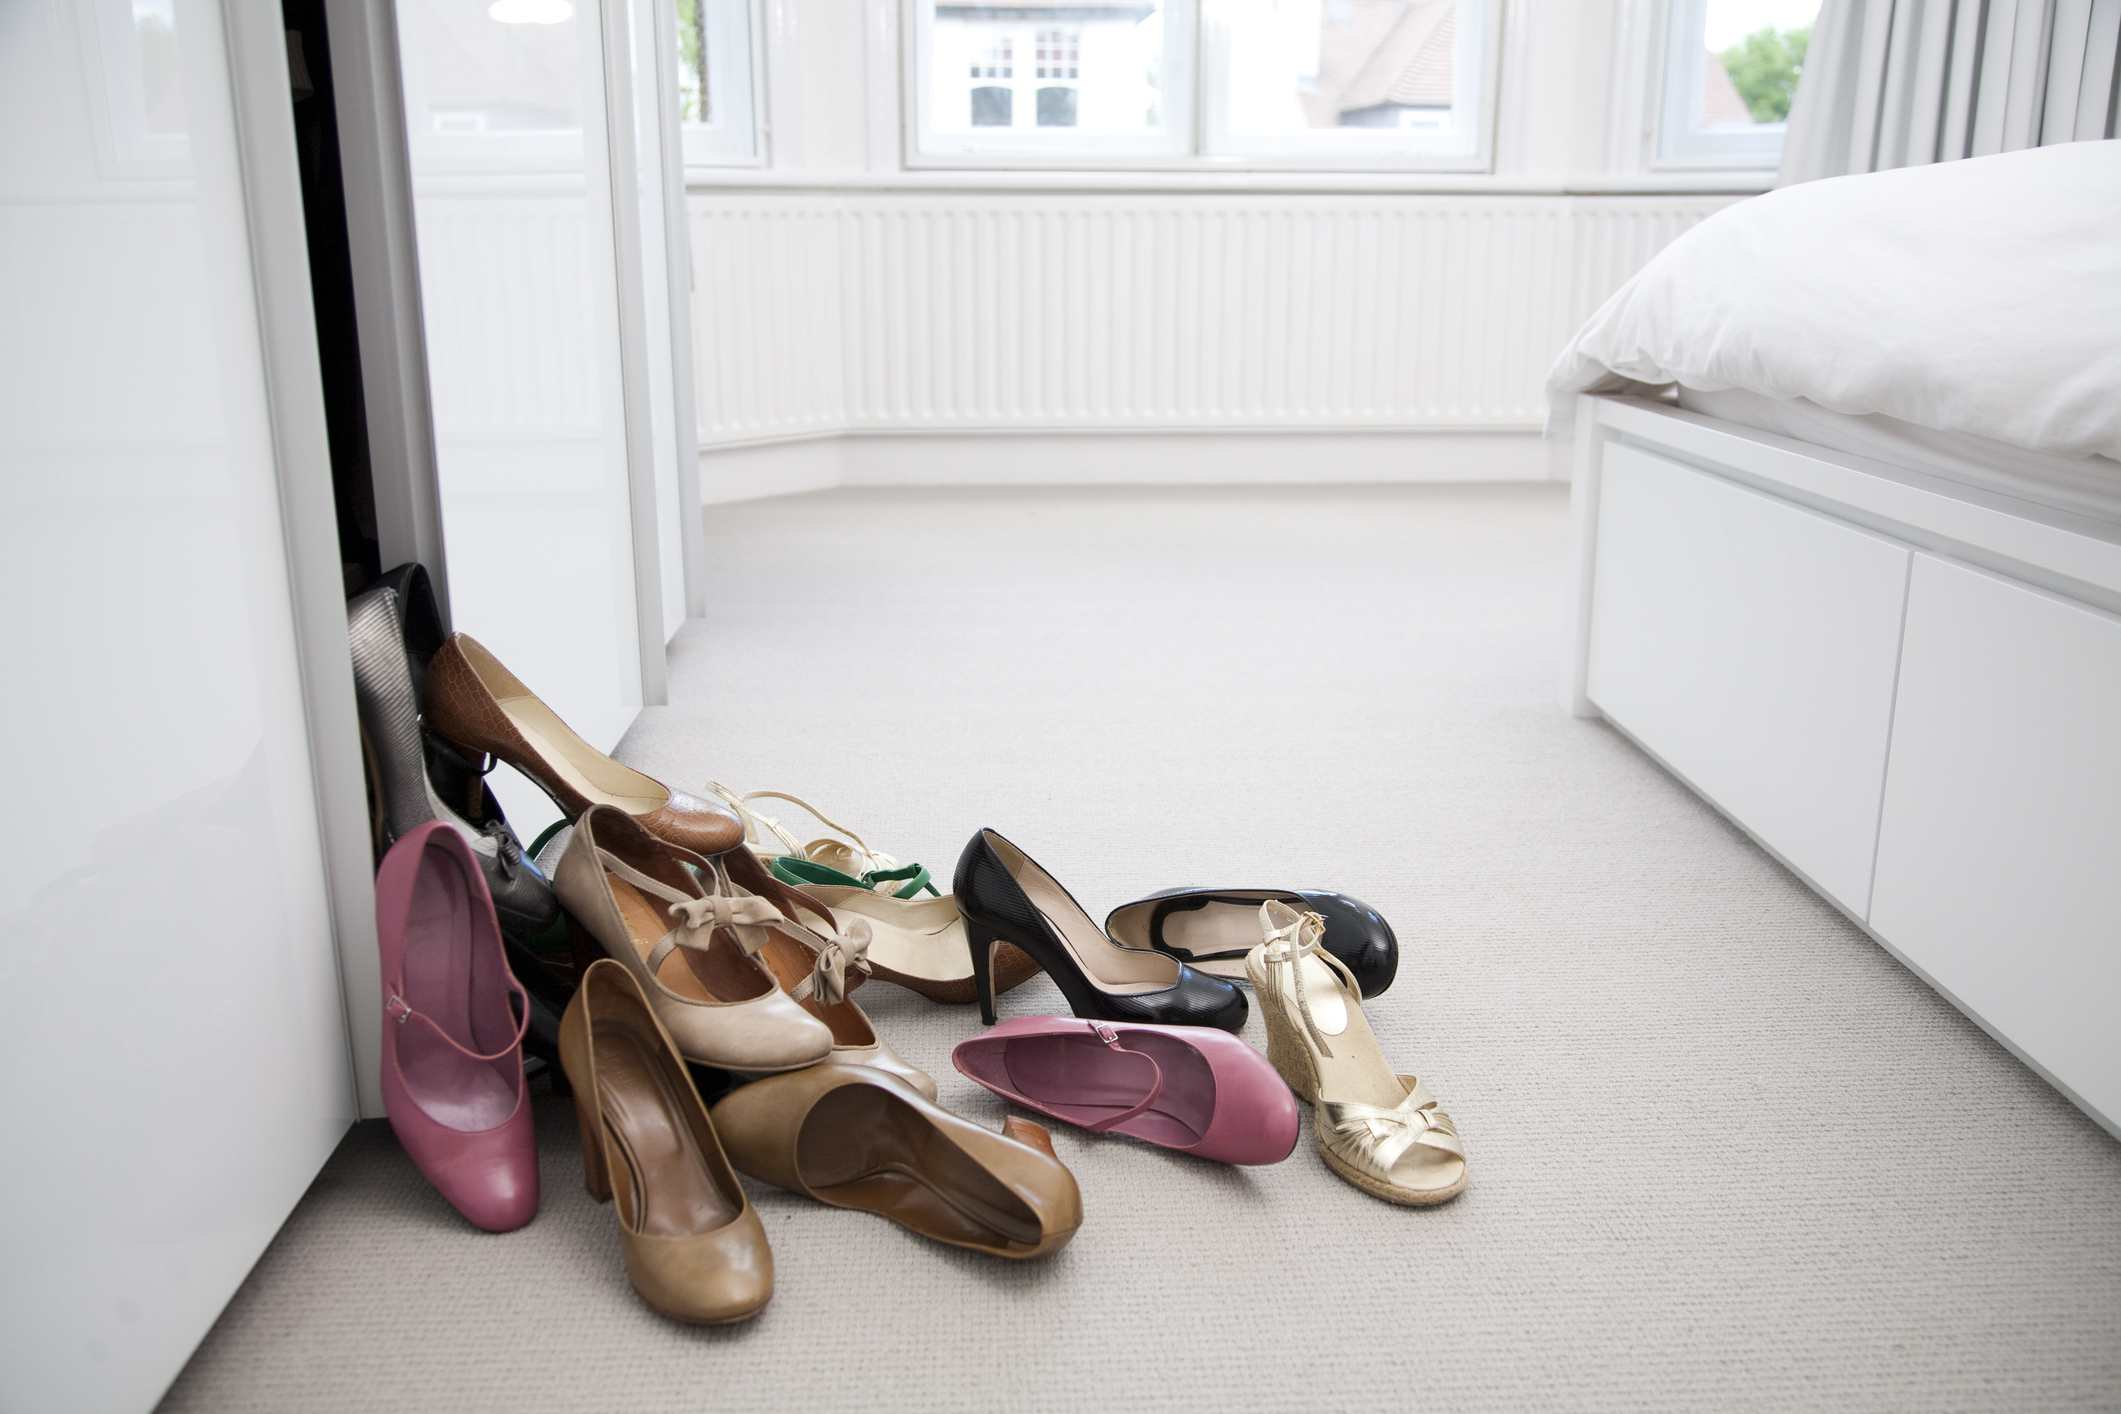 Several different pairs of shoes on the bedroom floor.